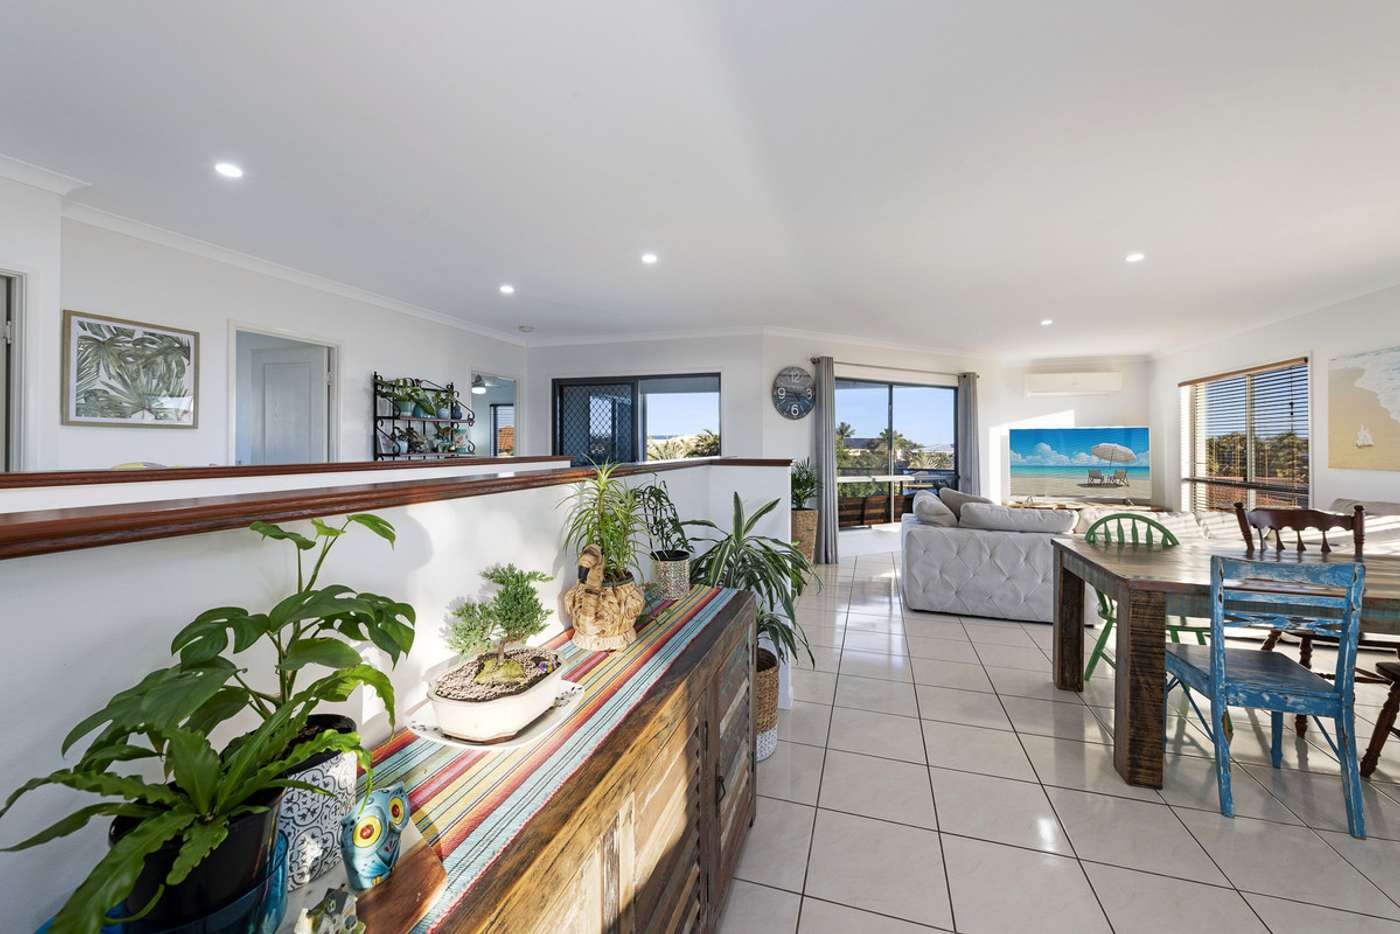 Seventh view of Homely house listing, 3 Arunda Street, Coral Cove QLD 4670